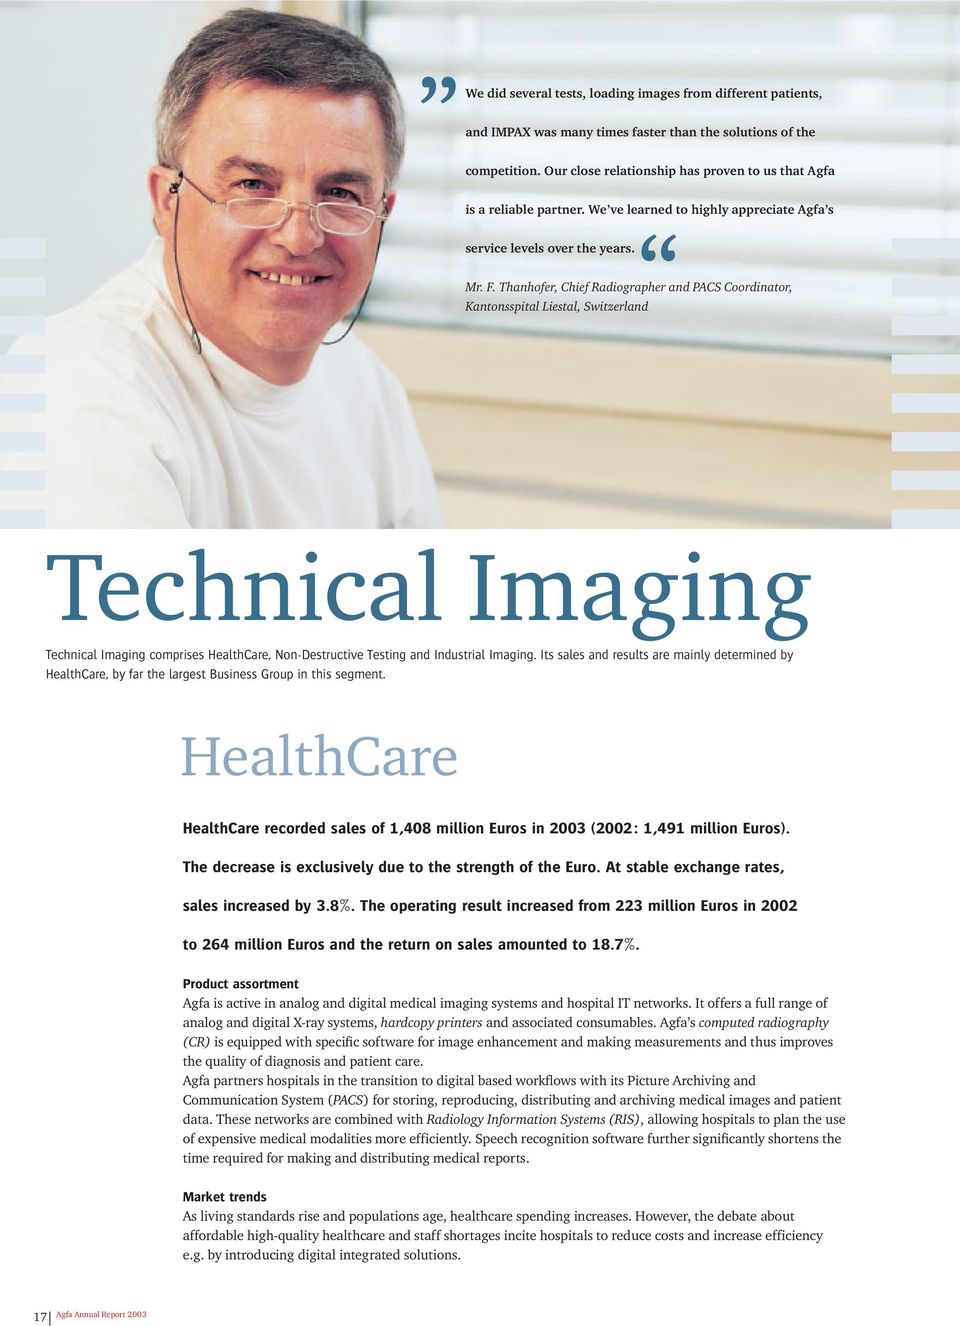 Thanhofer, Chief Radiographer and PACS Coordinator, Kantonsspital Liestal, Switzerland Technical Imaging Technical Imaging comprises HealthCare, Non-Destructive Testing and Industrial Imaging.